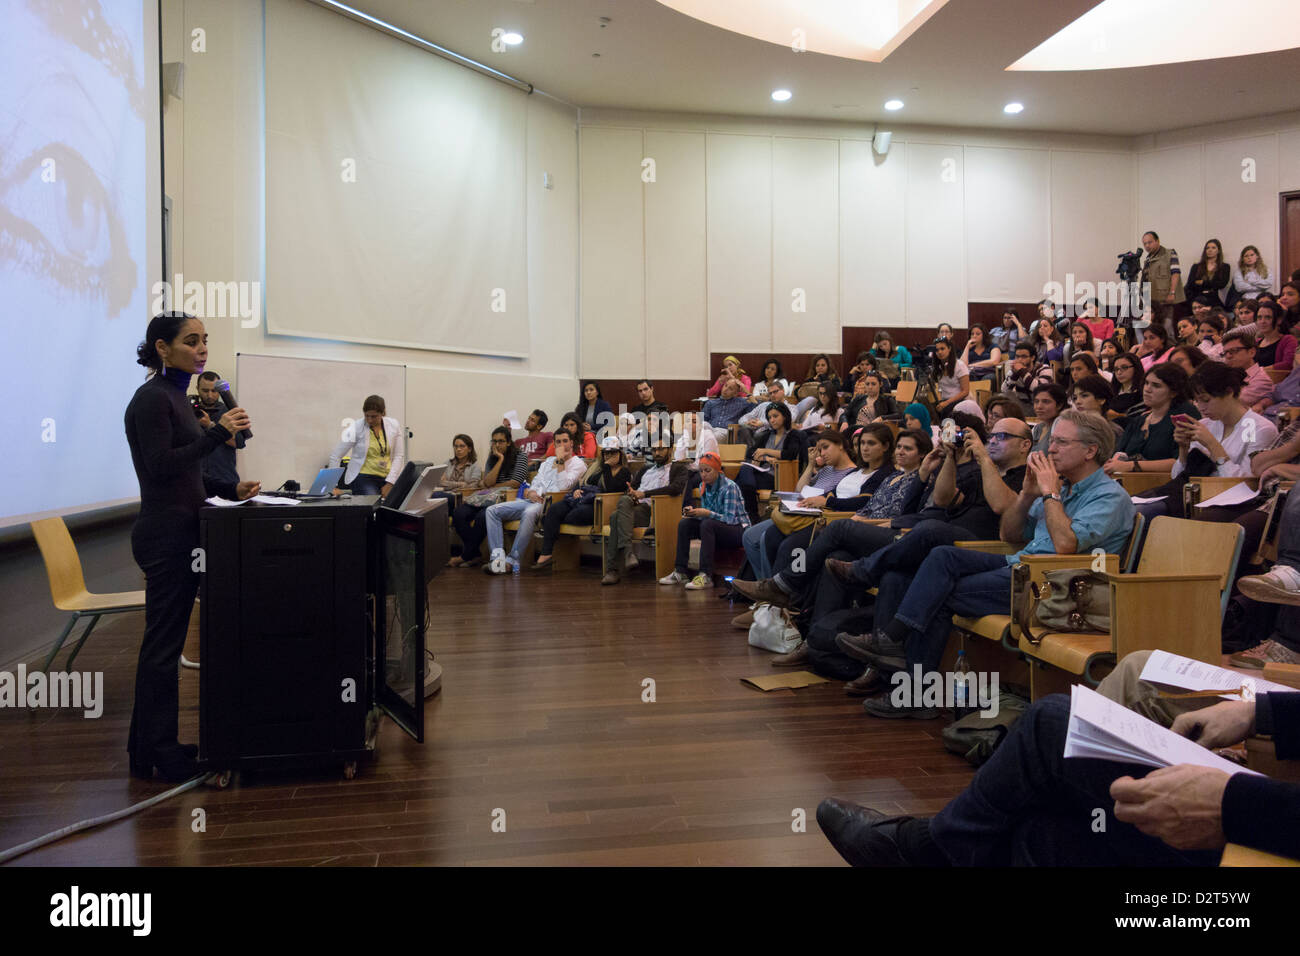 lecture by Shirin Neshat at the American University in Cairo, Egypt - Stock Image